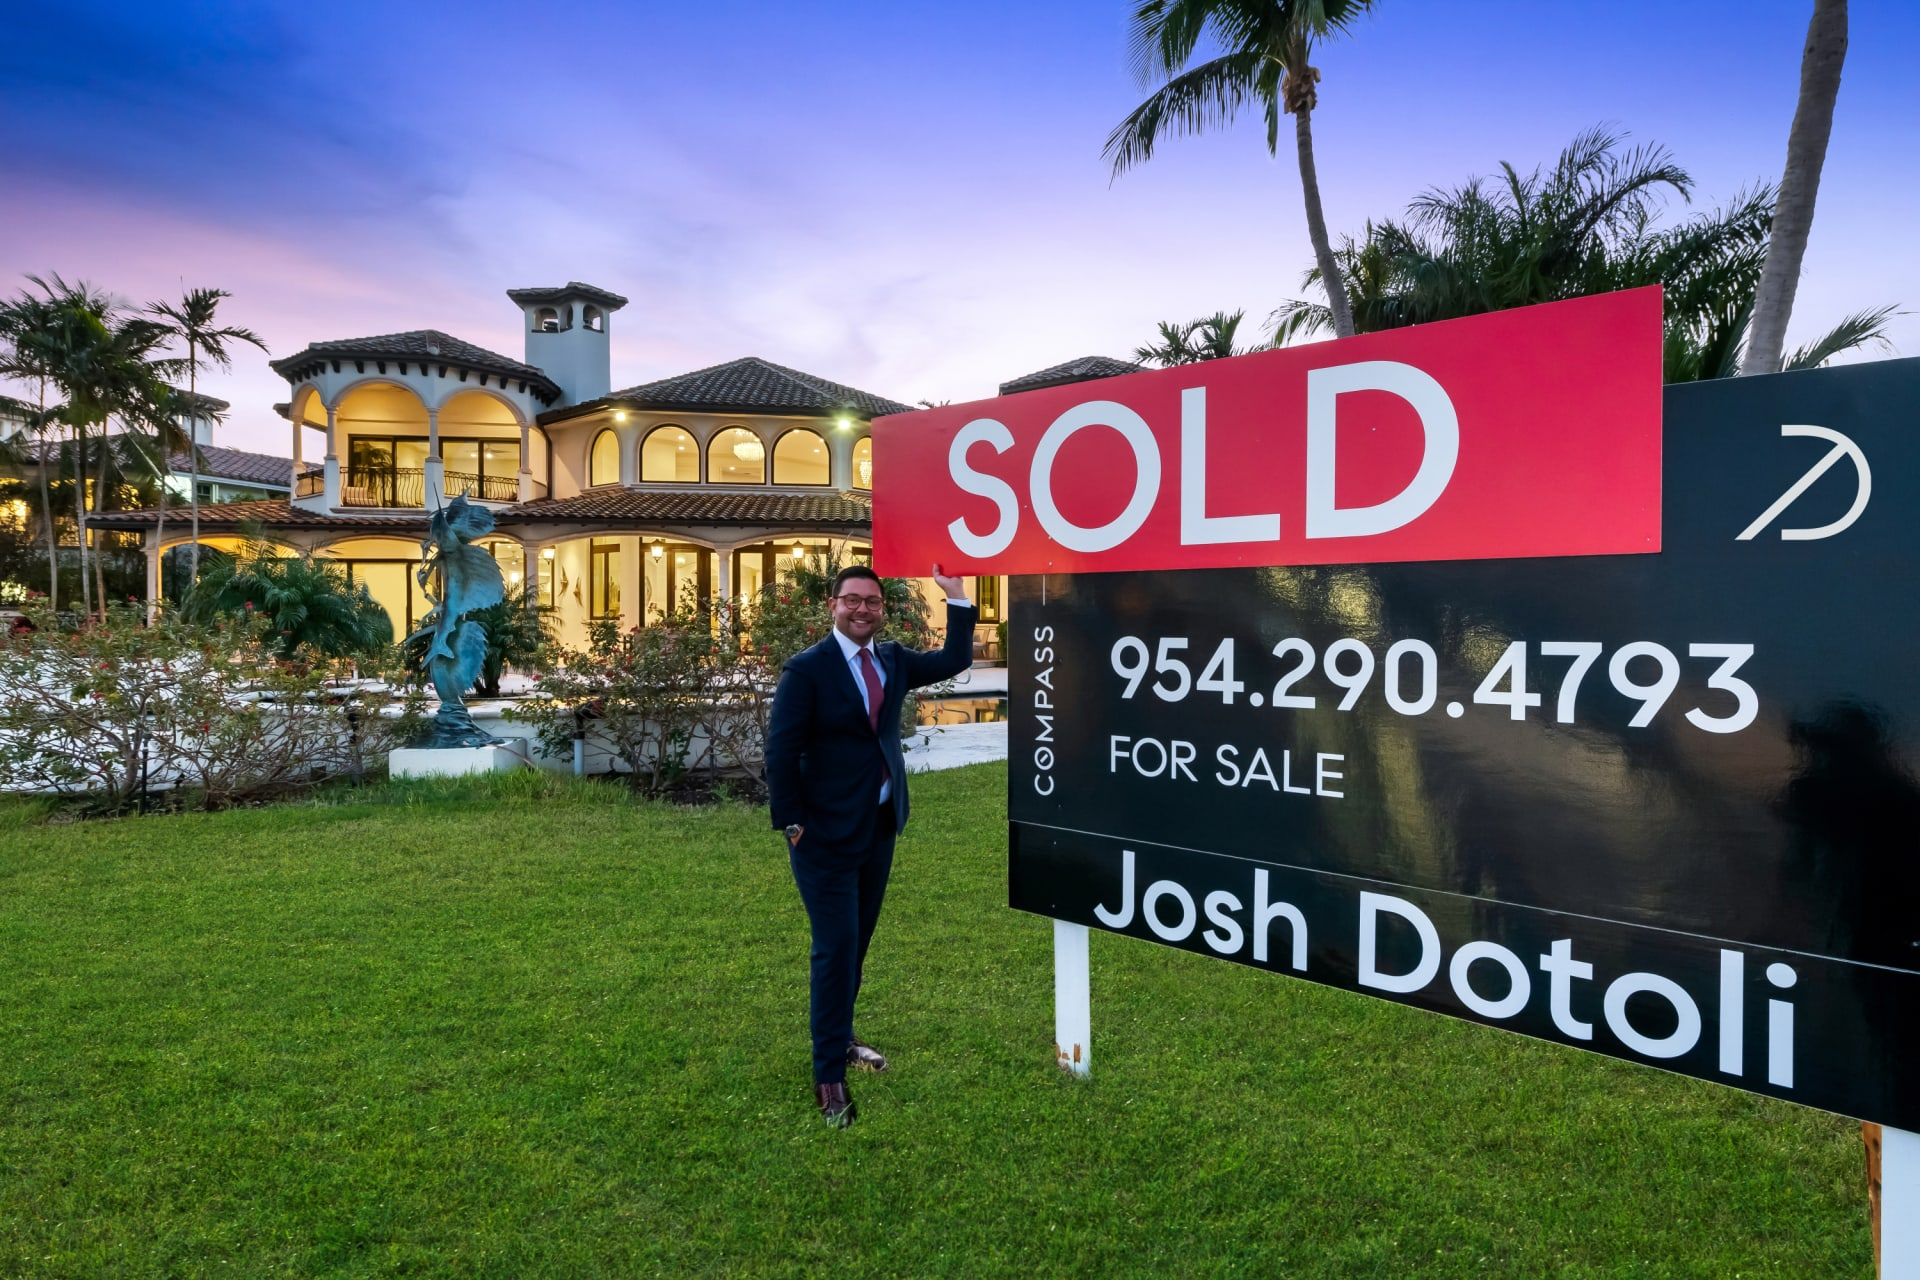 HOW TO NOT LOSE MONEY WHEN SELLING YOUR HOME